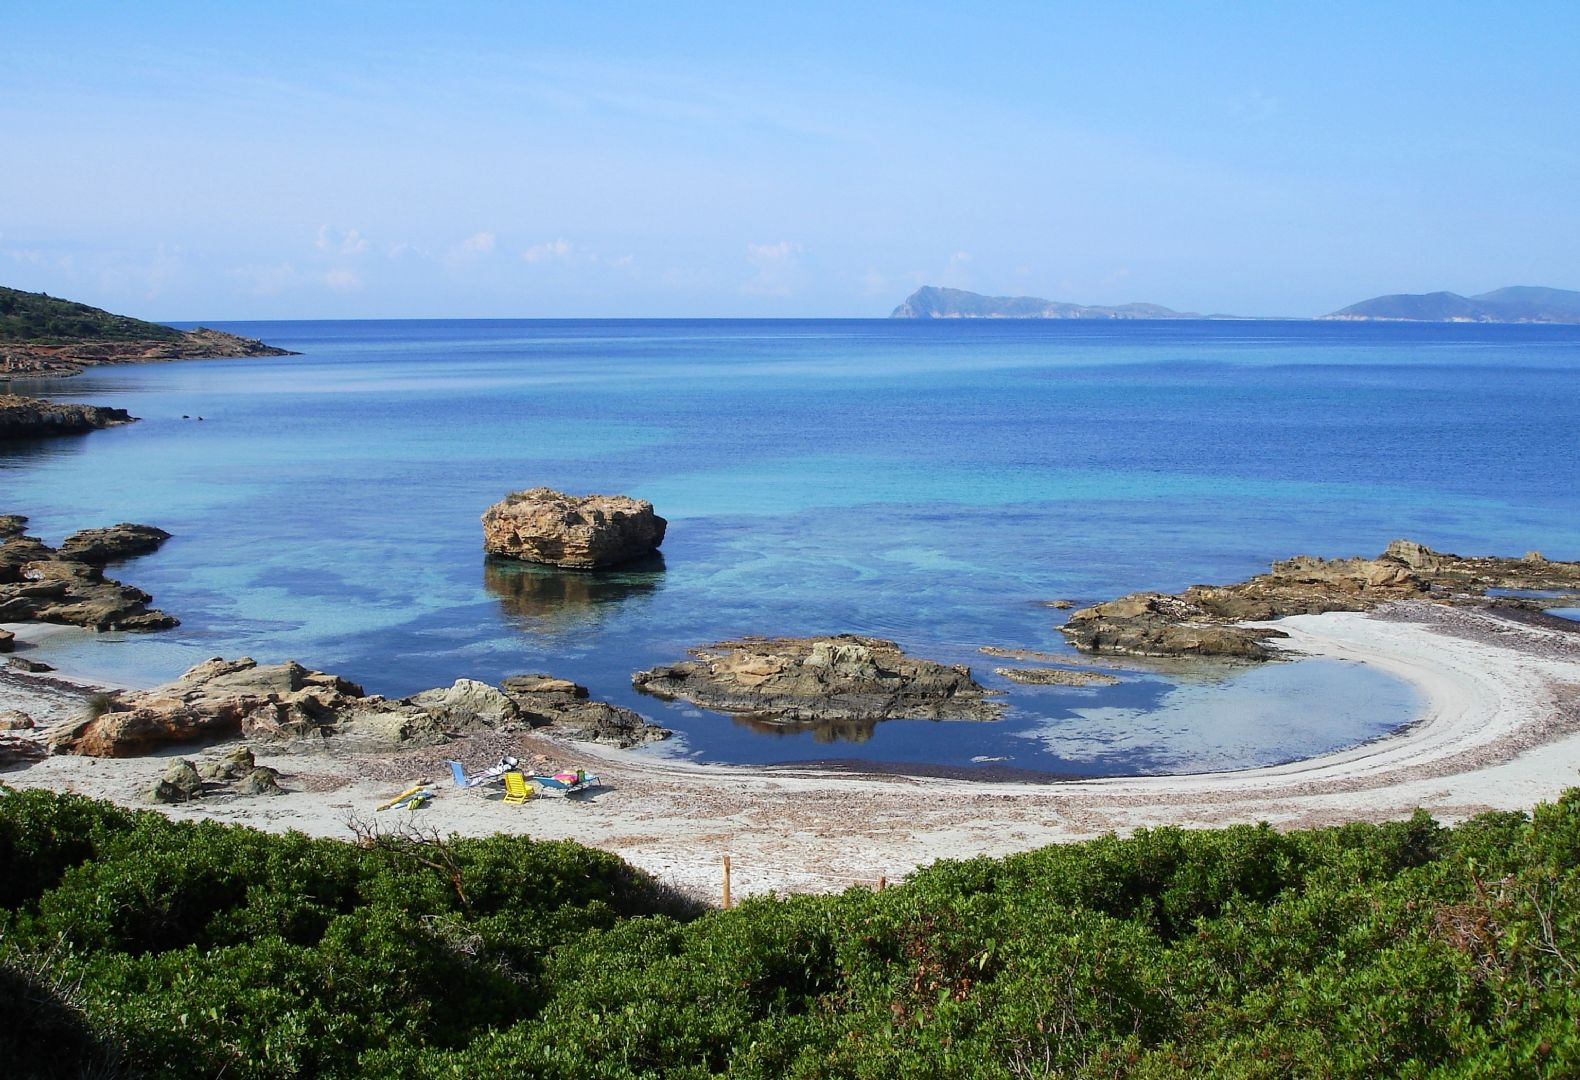 sardinialeisurecycling8.JPG - Italy - Sardinia - Coasts and Islands - Self-Guided Family Cycling Holiday - Family Cycling